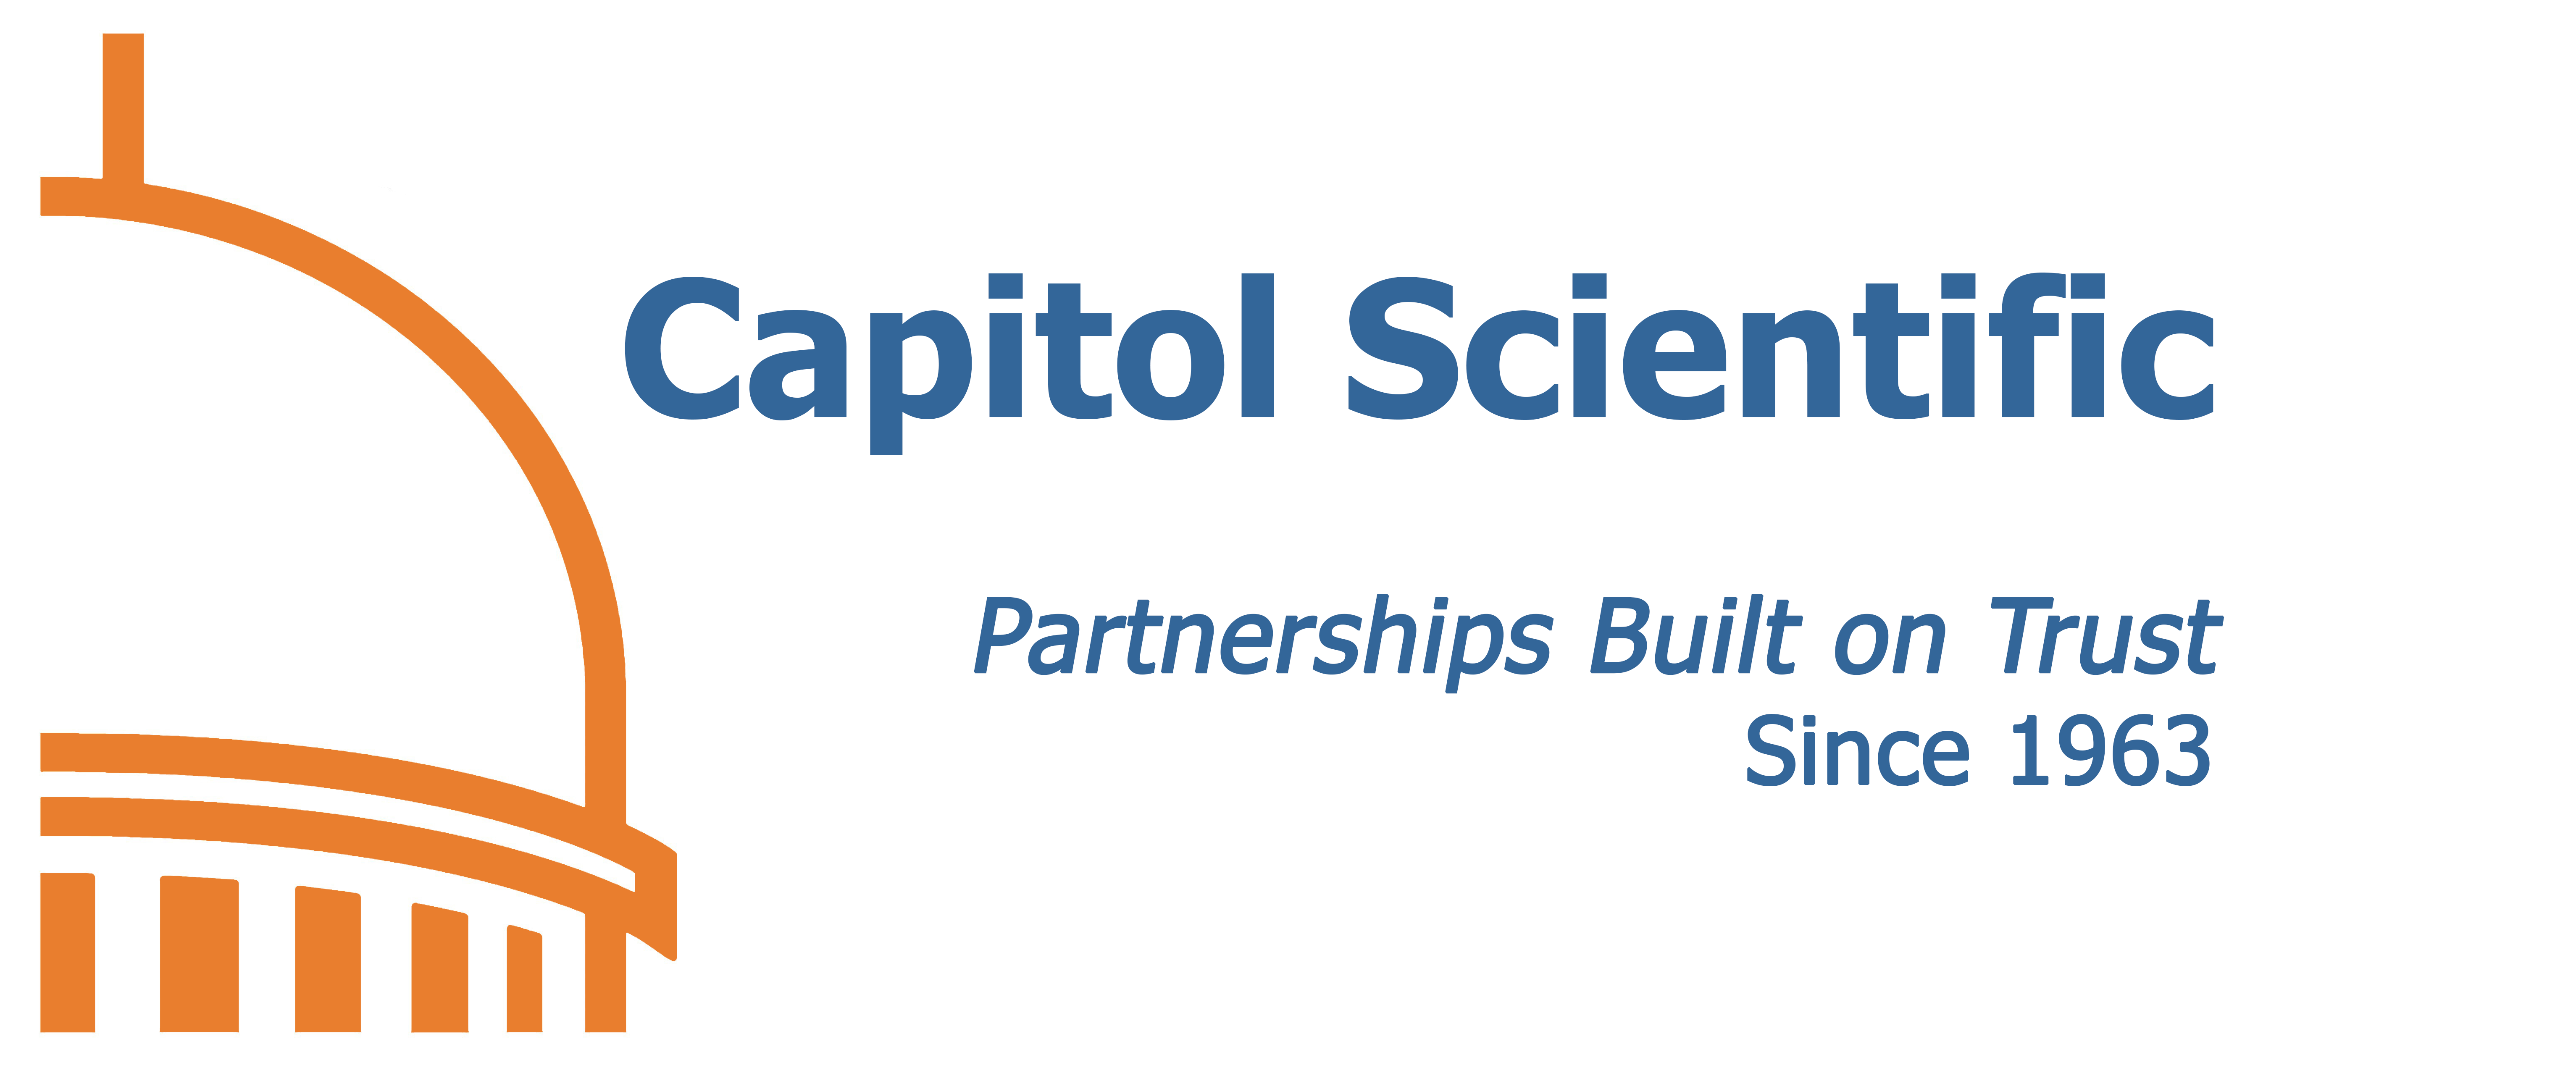 Capitol Scientific logo